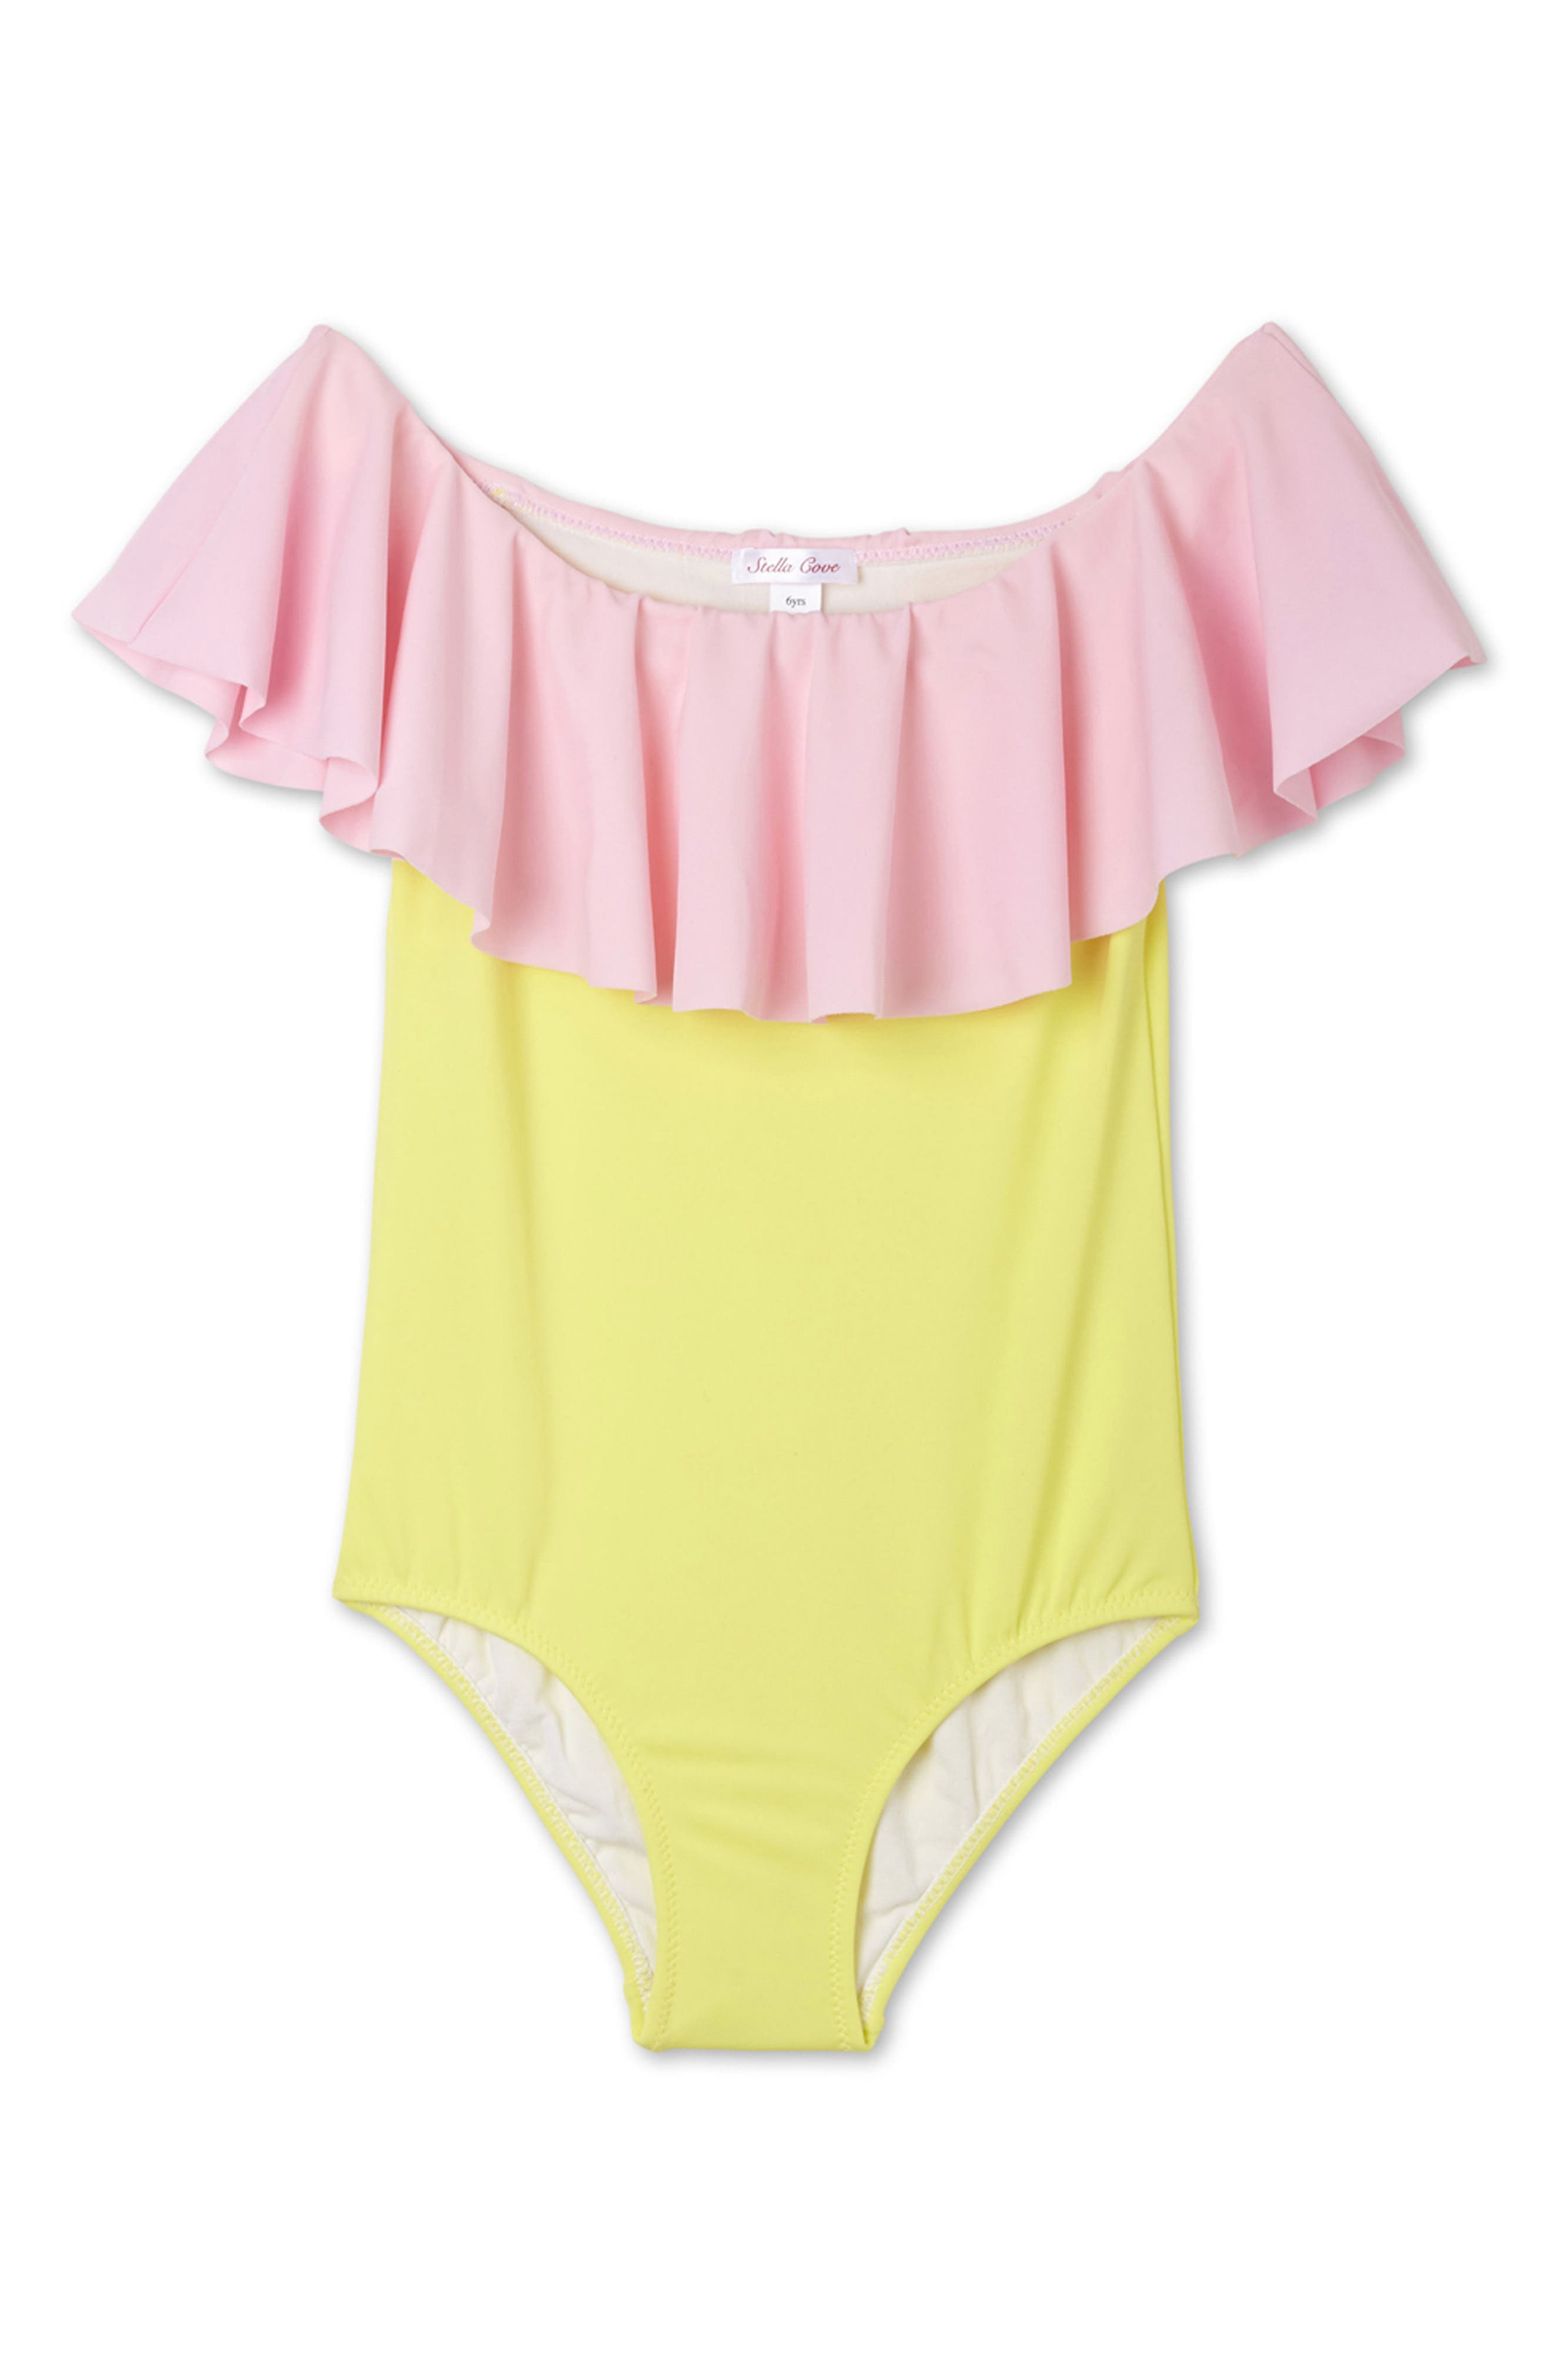 Alternate Image 1 Selected - Stella Cove One-Piece Ruffle Swimsuit (Big Girls)